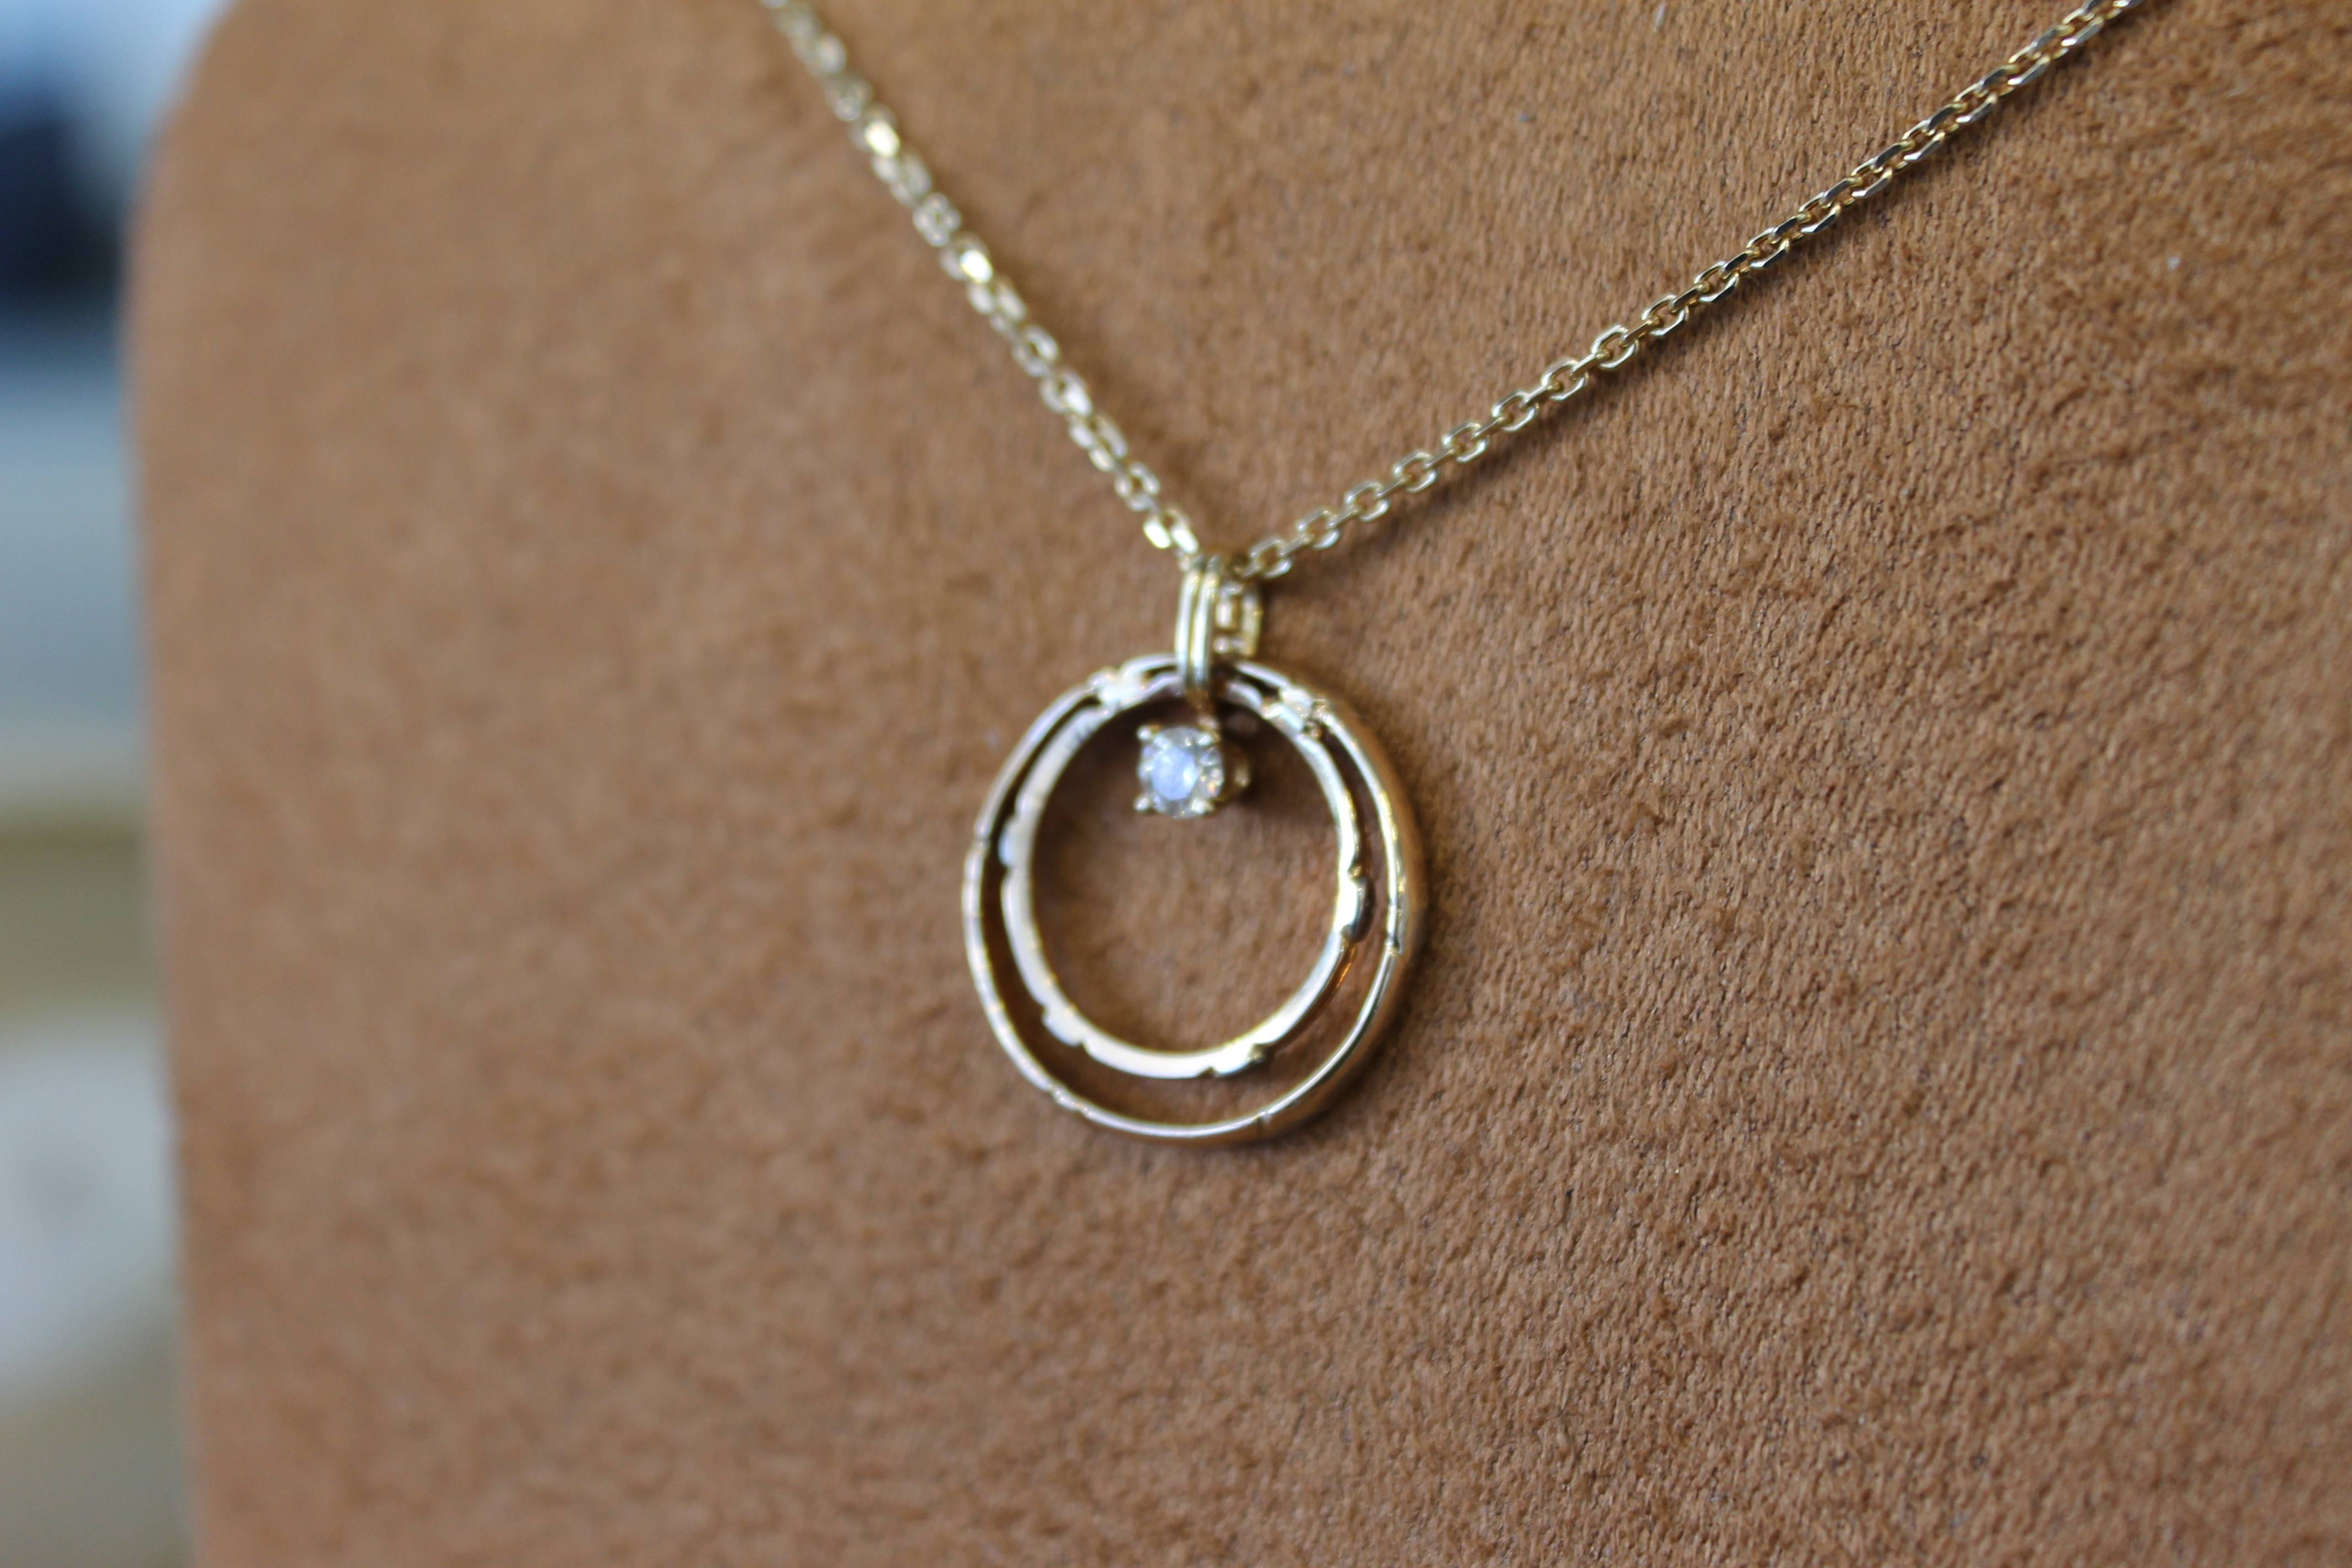 A Lifetime Of Love | A. Anderson Jewelers Within Wedding Bands On Necklace (Gallery 1 of 15)